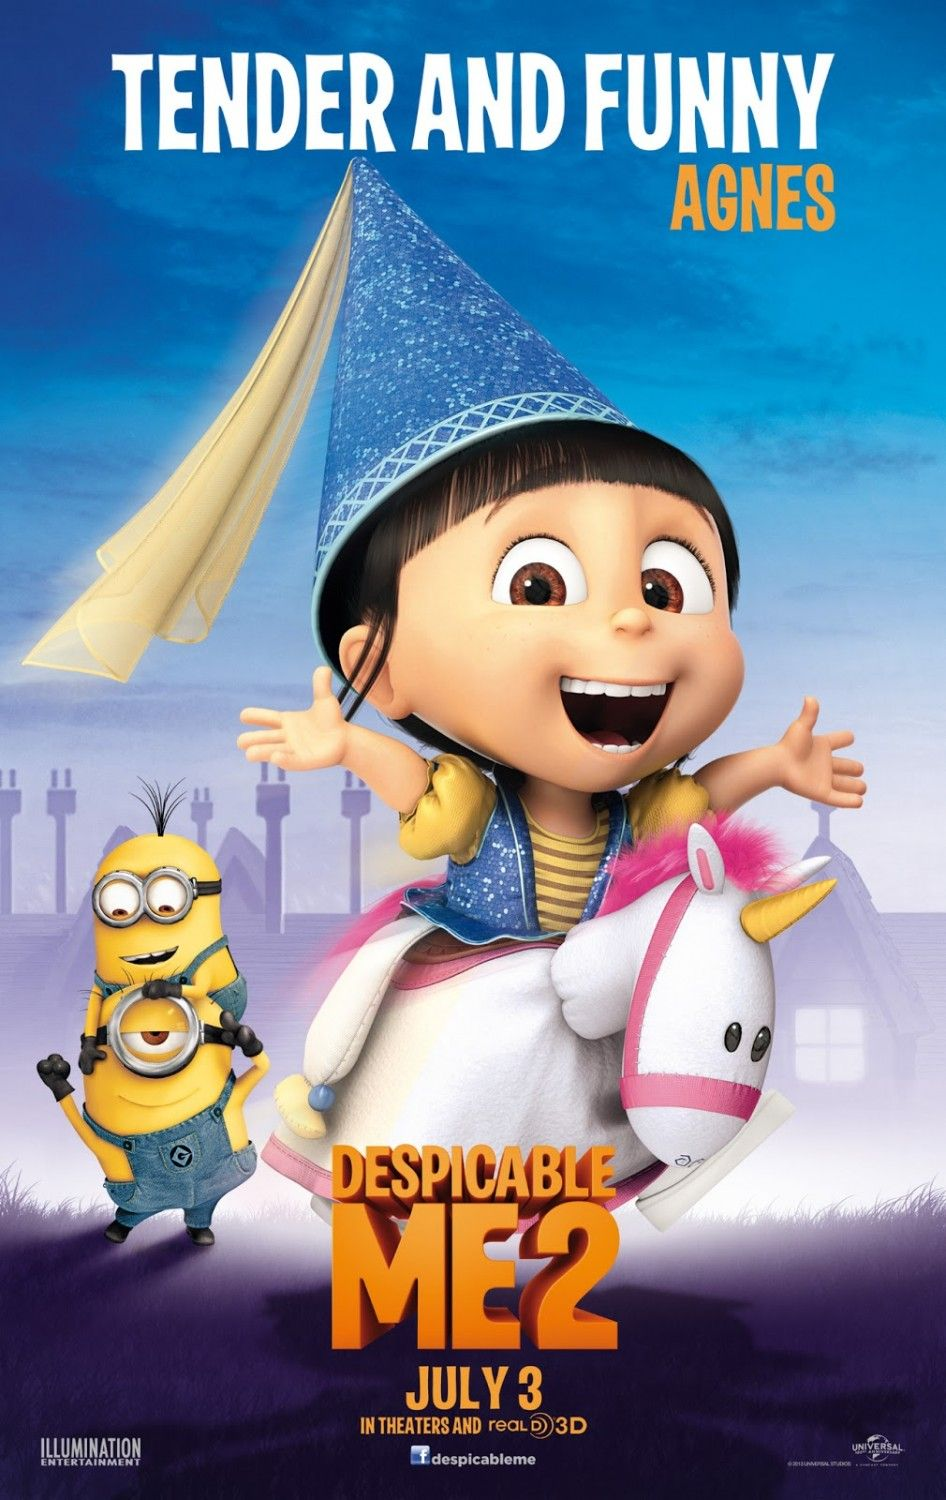 Movie On Stage Despicable Me 2 Minions Steve Carell Animacao